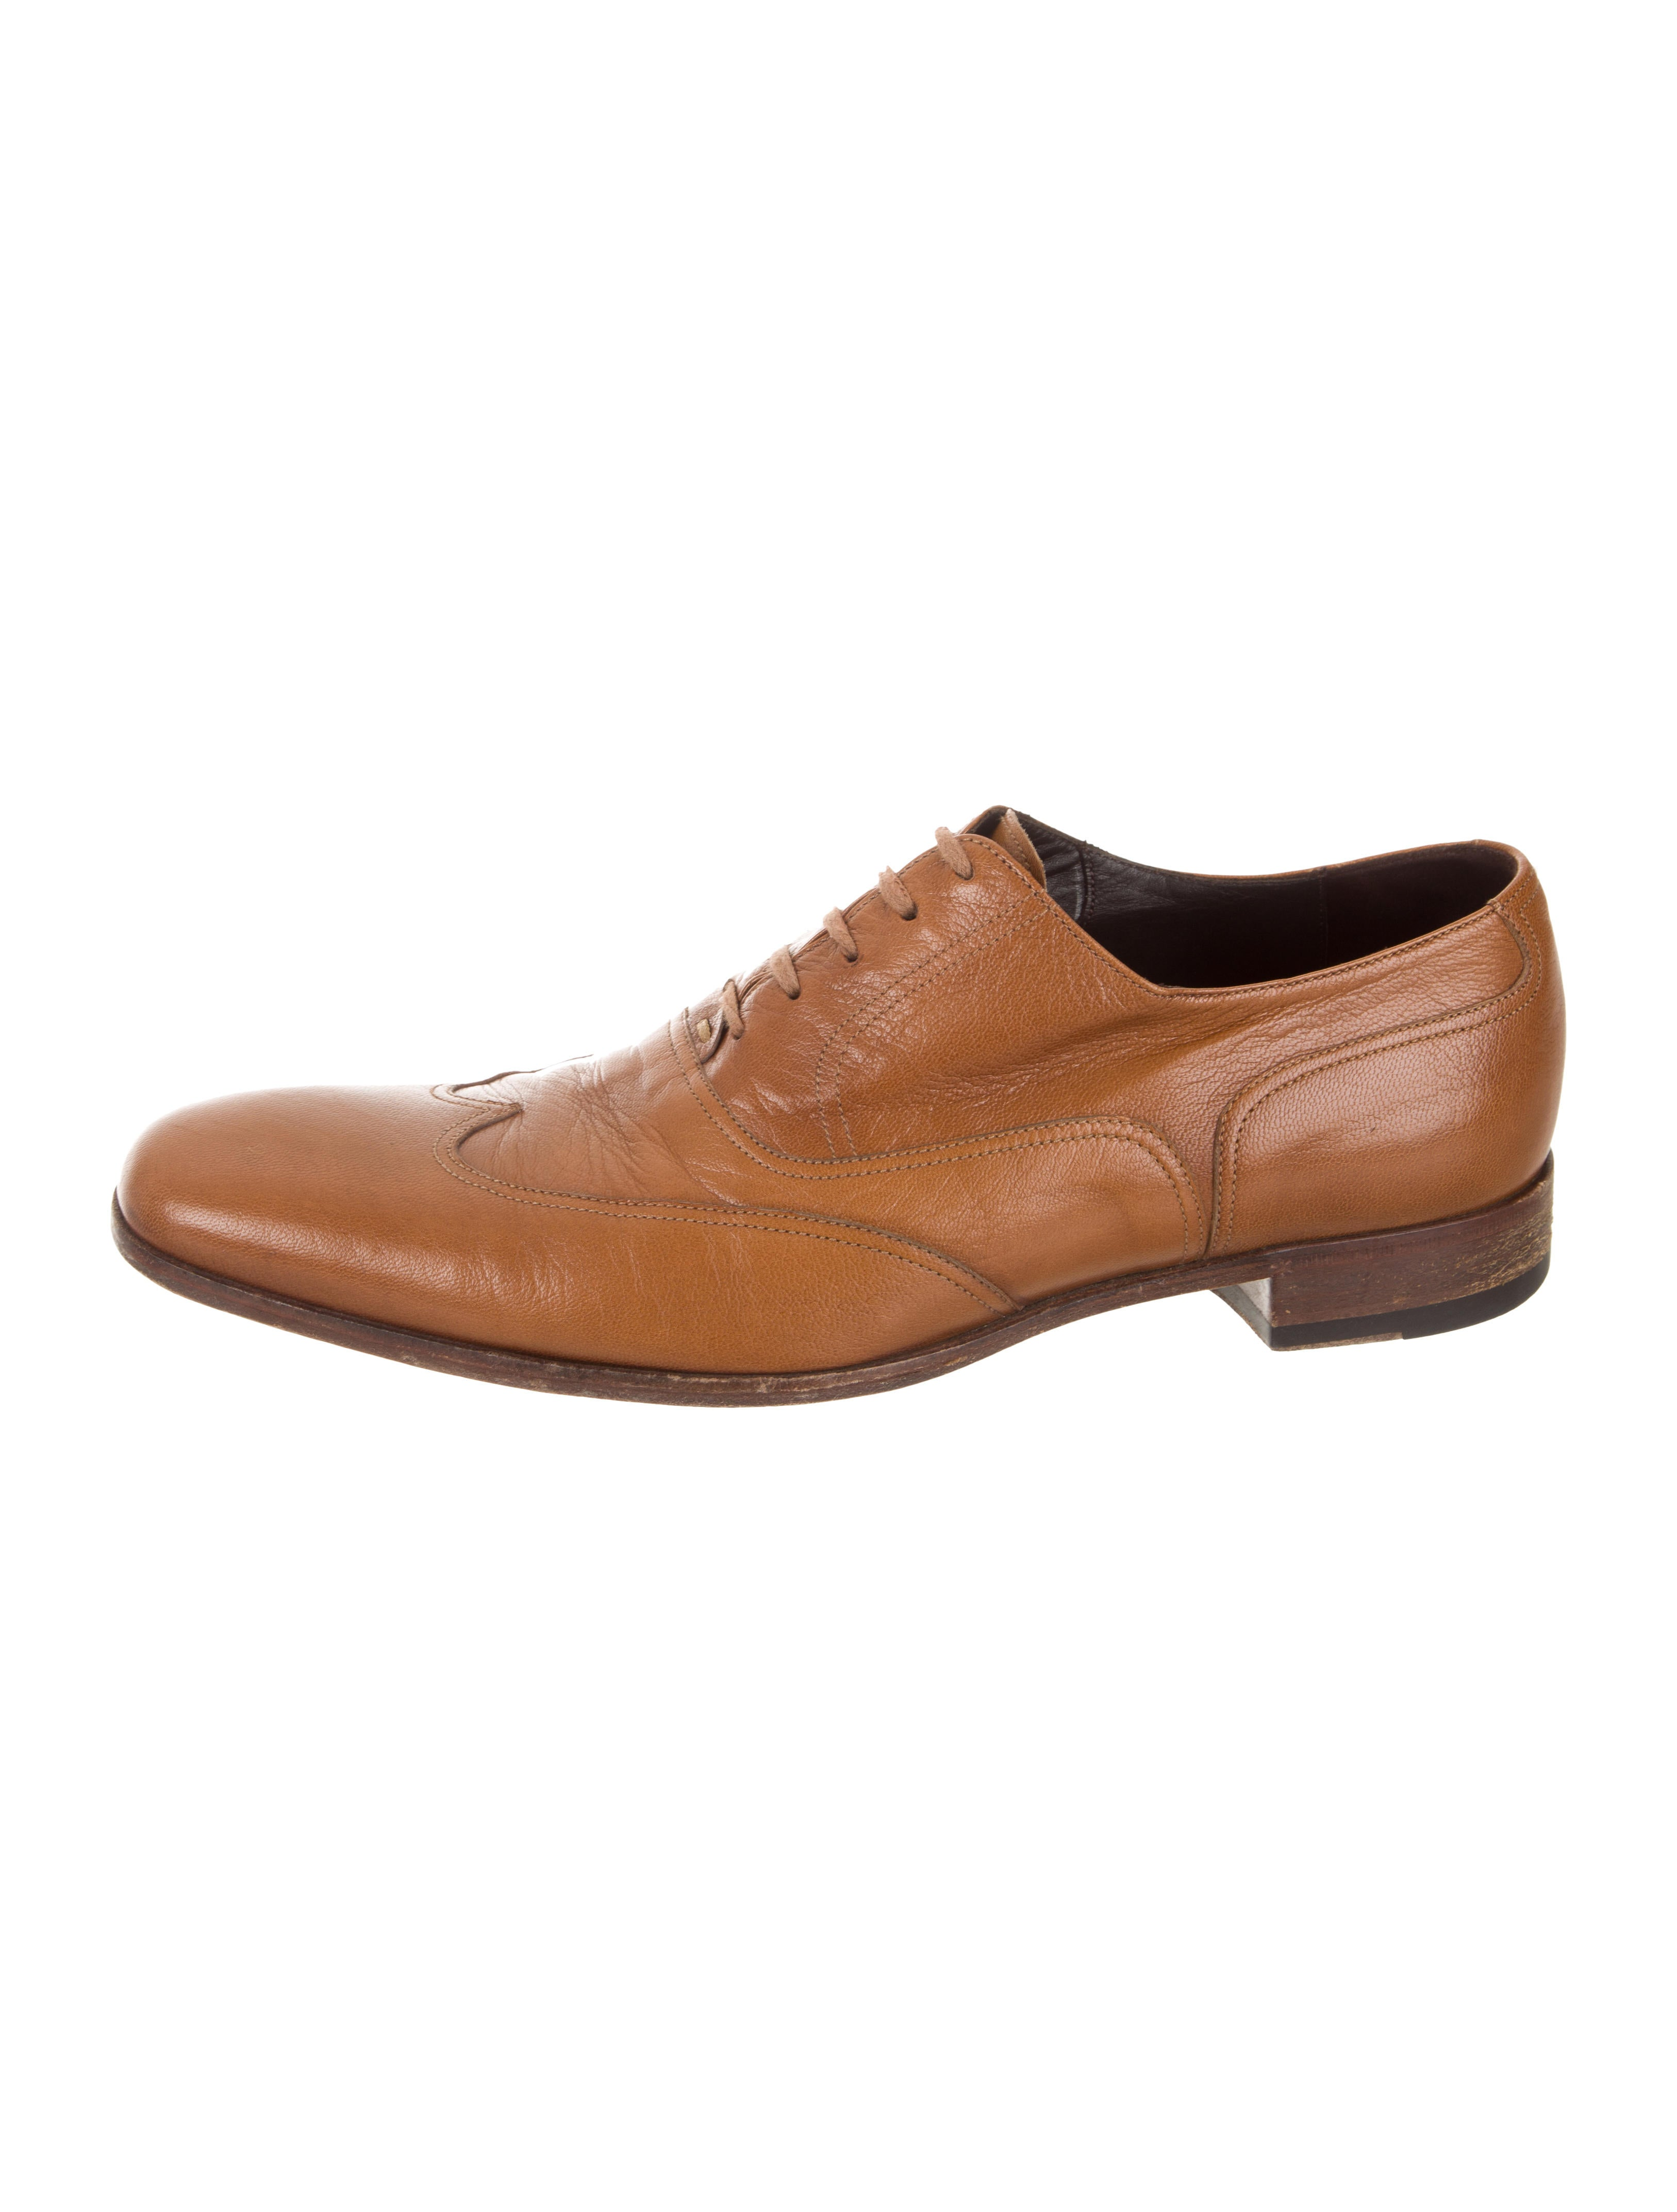 Gucci Pointed Toe Wingtip Oxfords Shoes Guc299581 The Realreal